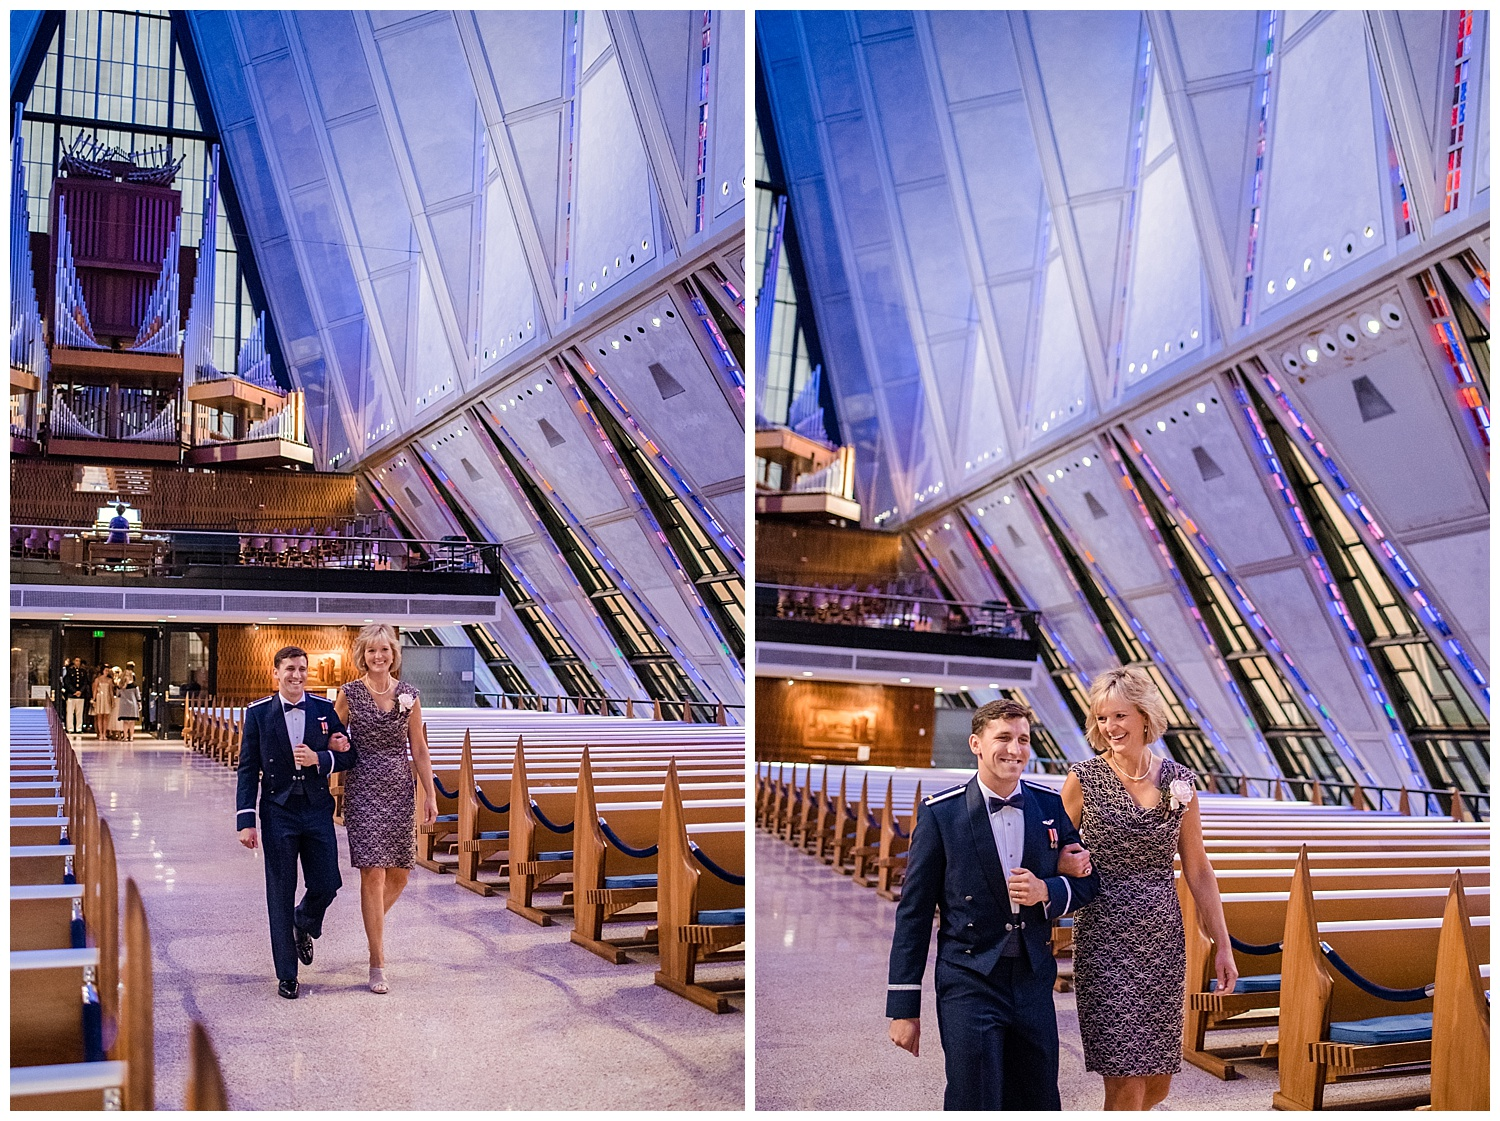 Military Wedding, Cadet Chapel Wedding, Wedding Ceremony walking down the aisle, Mother walking down the aisle, Colorado Wedding Photographer, Denver Wedding Photographer, Denver Elopement Photographer, Colorado Elopement Photographer, Rocky Mountain Wedding Photographer, Downtown Denver Photographer